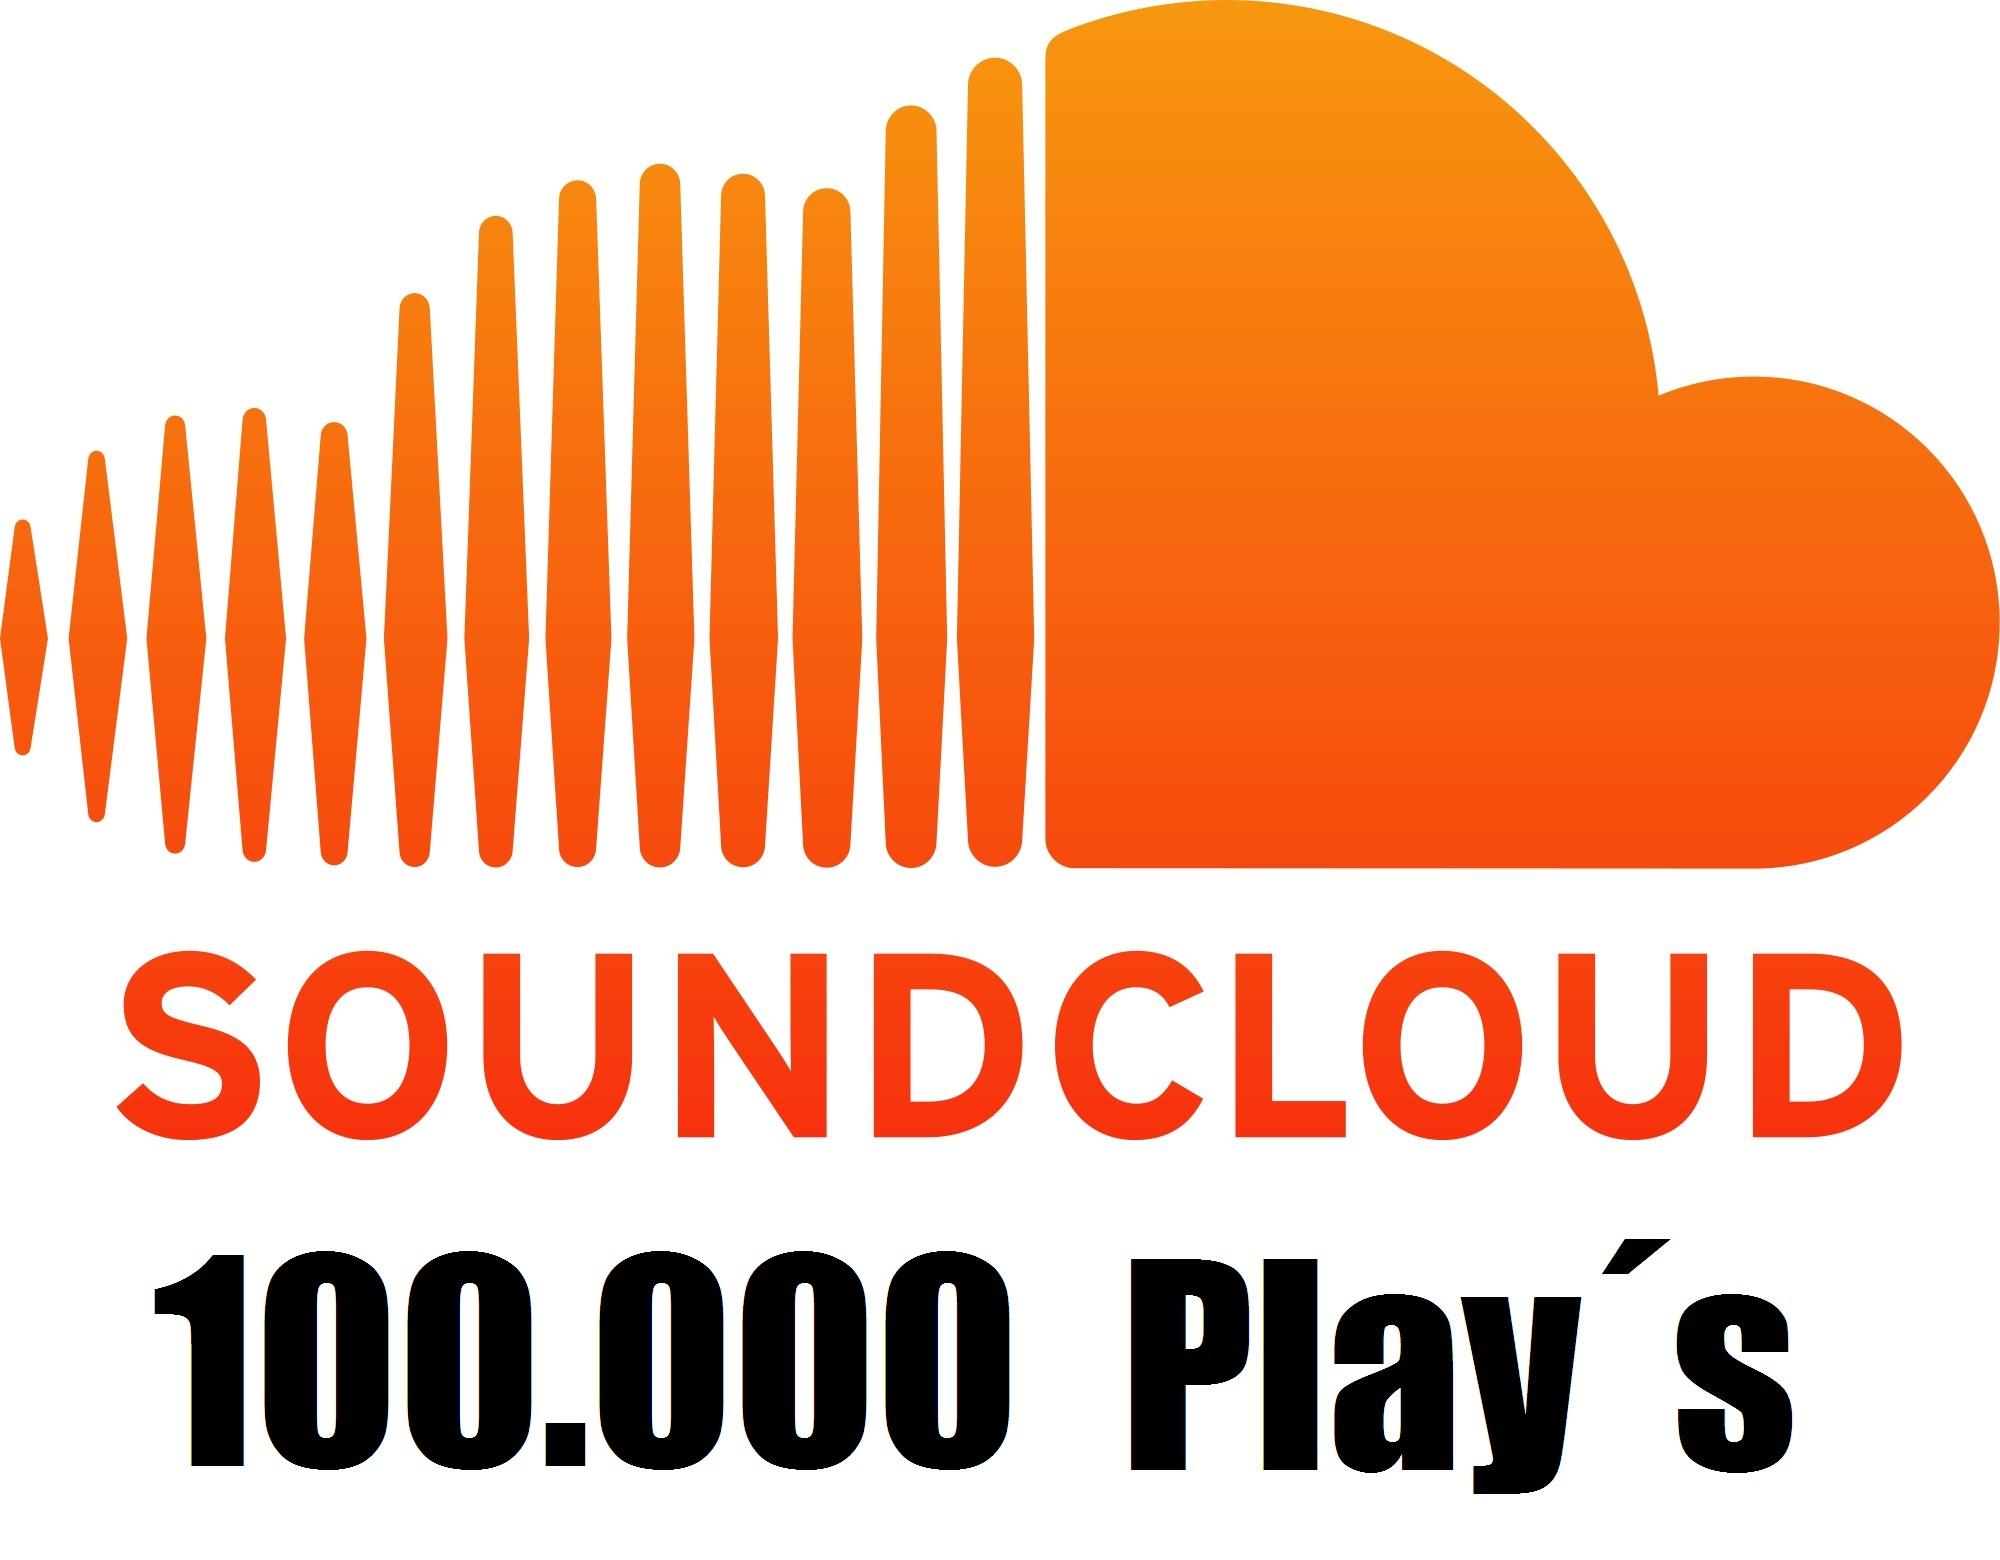 100,000 Soundcloud Plays + 50 Likes + 30 Comments